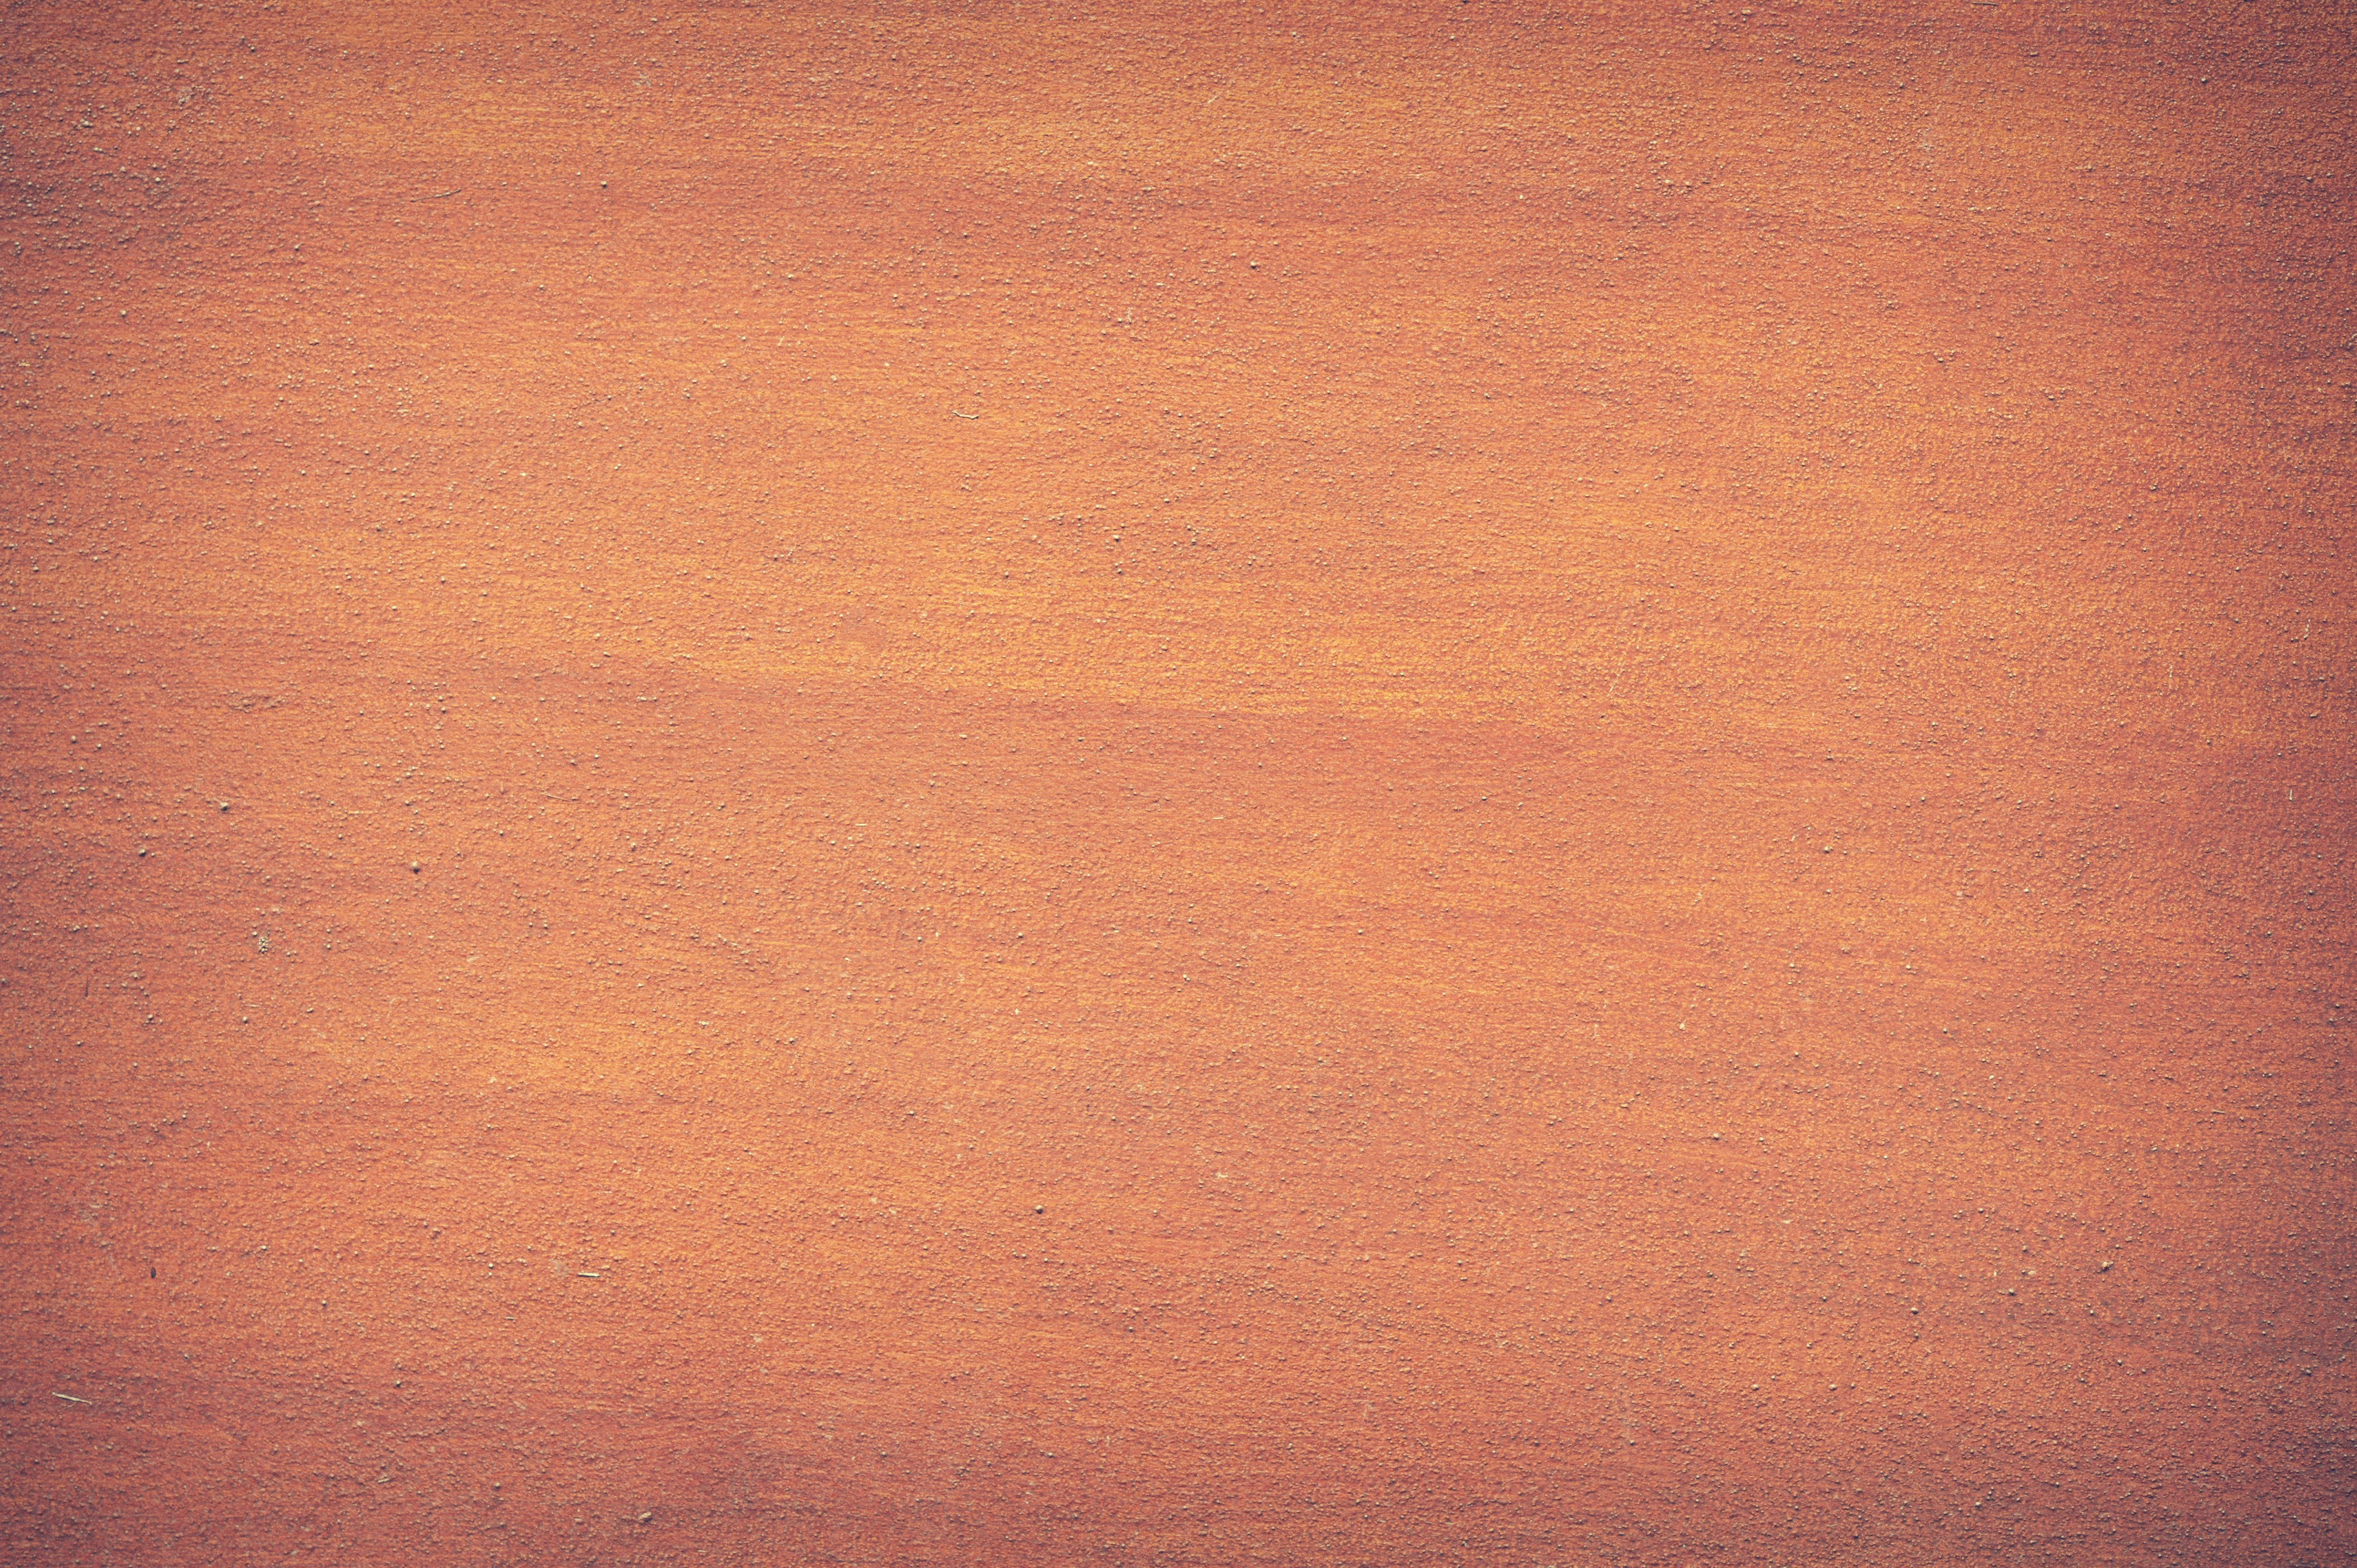 1000 great plain backgrounds photos pexels free stock photos - 1000 color wallpapers ...